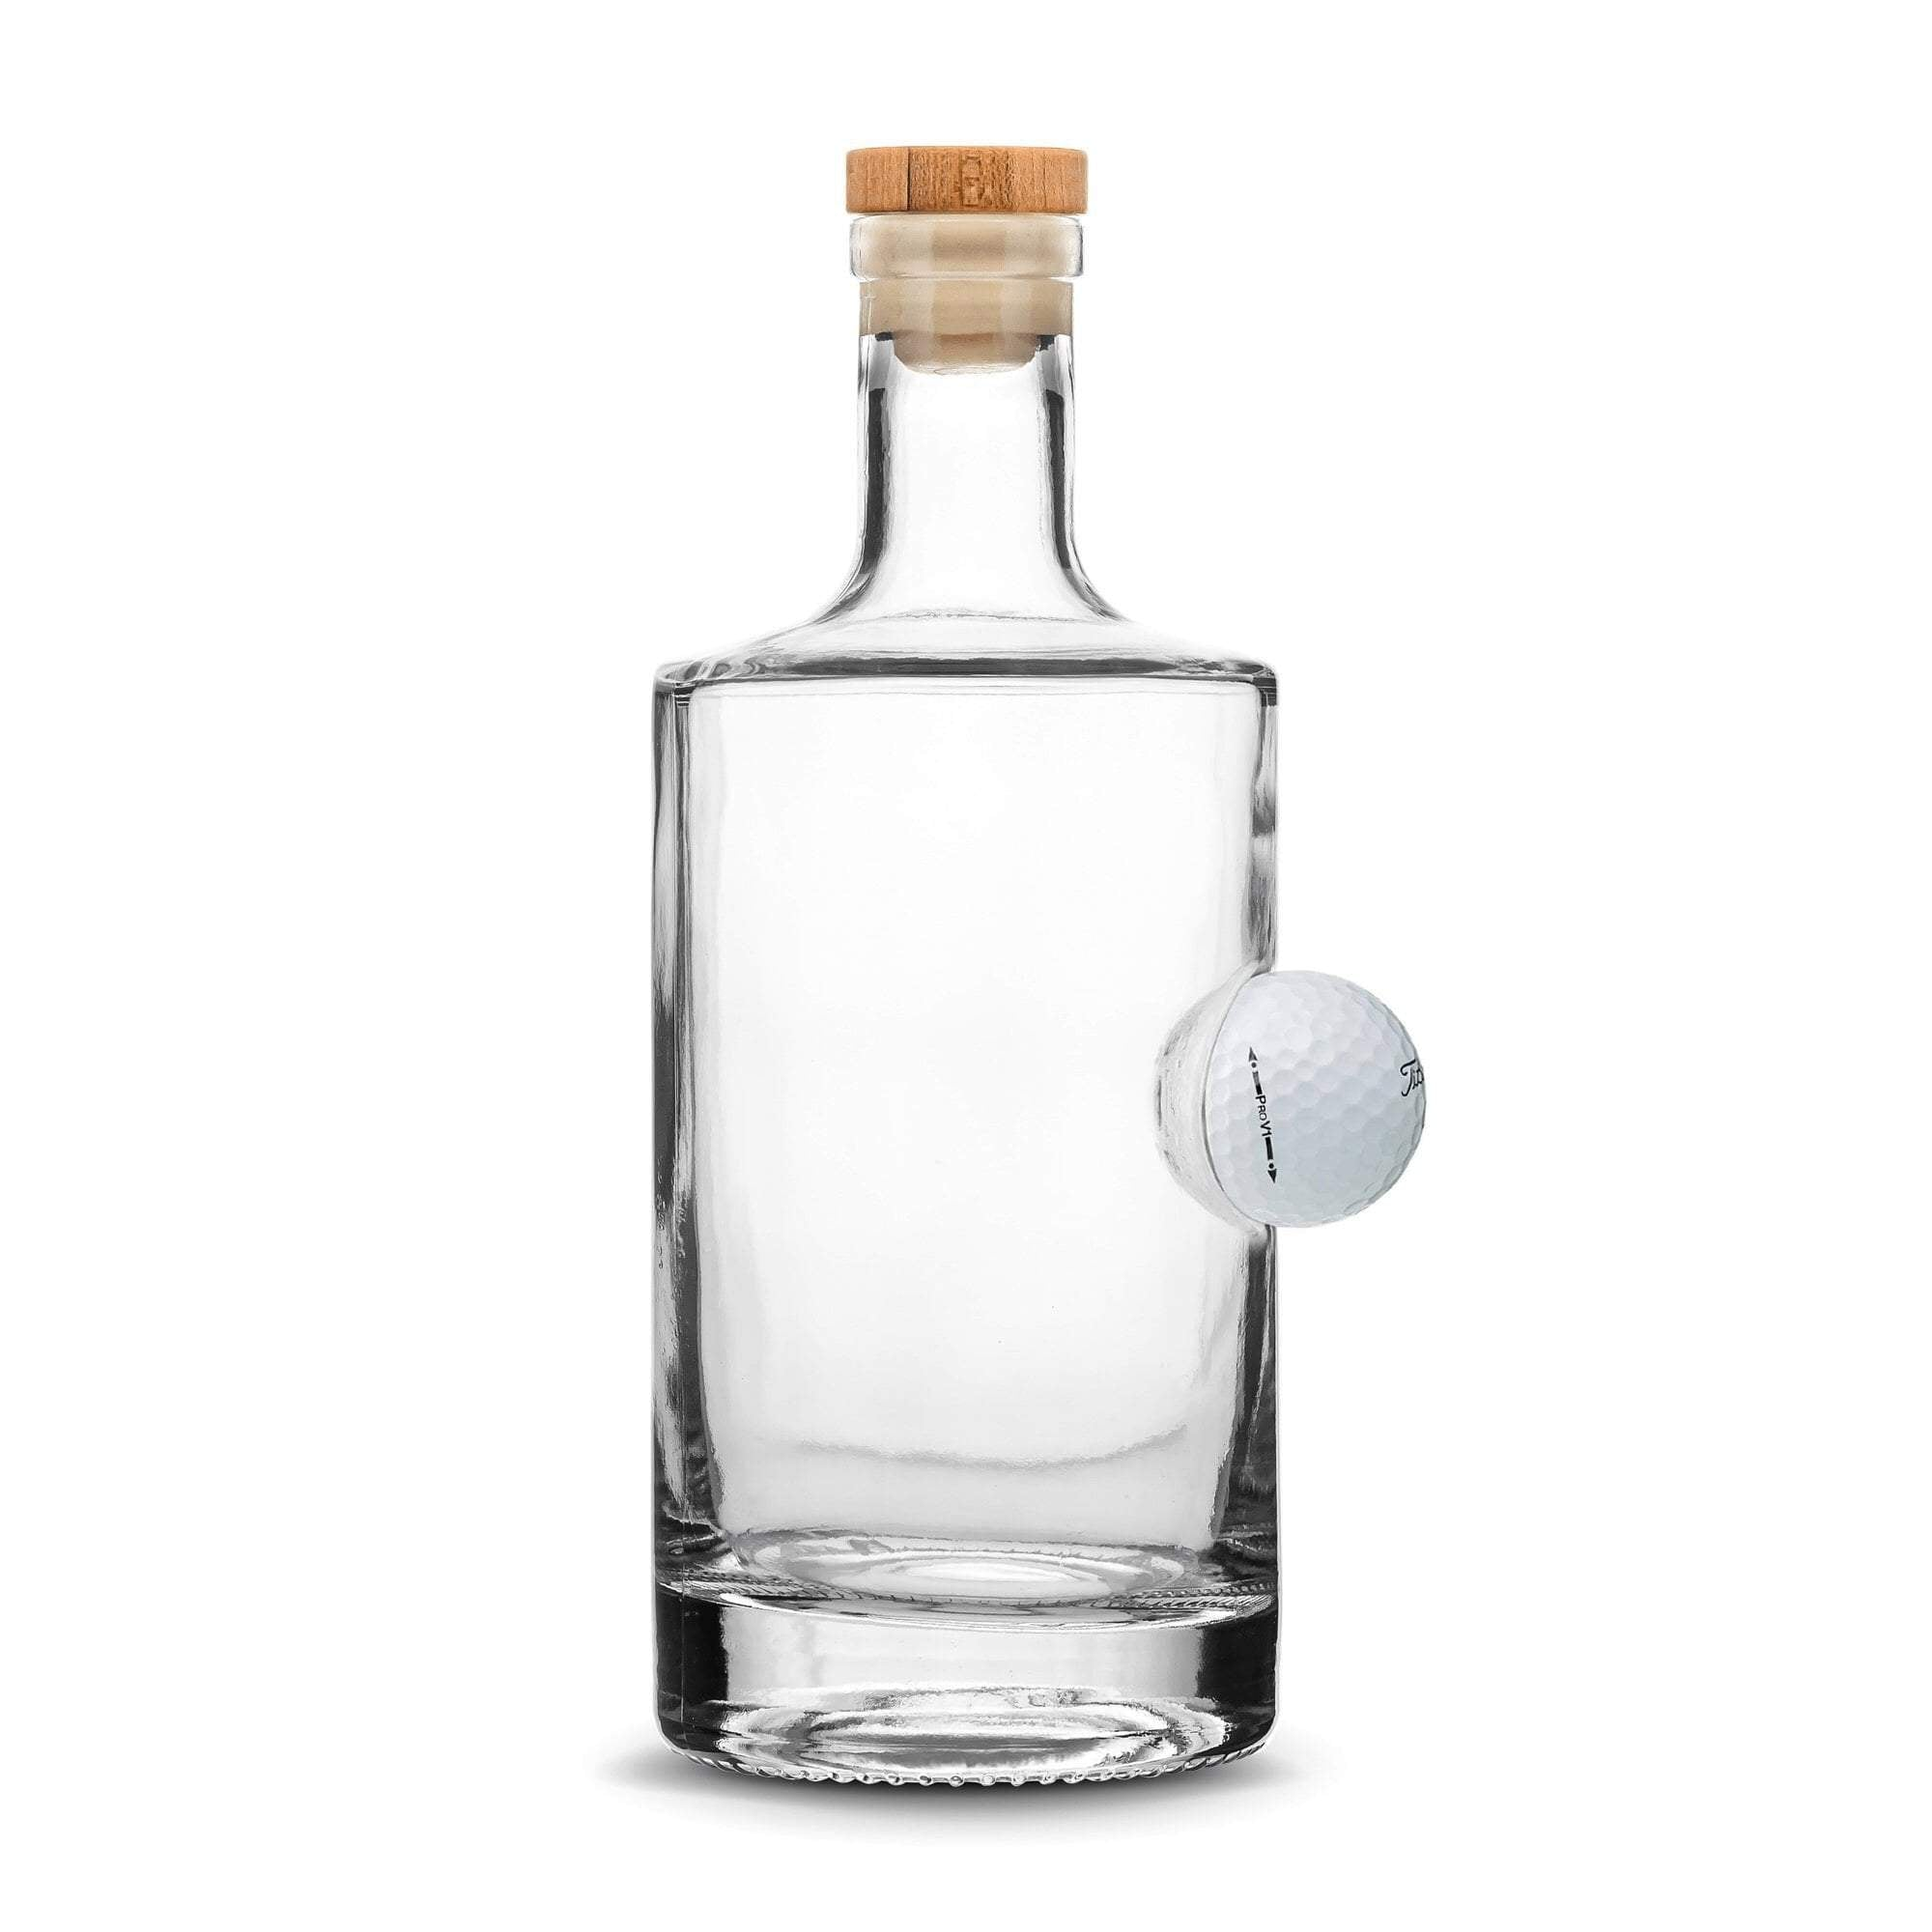 Custom Etched Refillable Golf Ball Jersey Bottle, 750mL Integrity Bottles